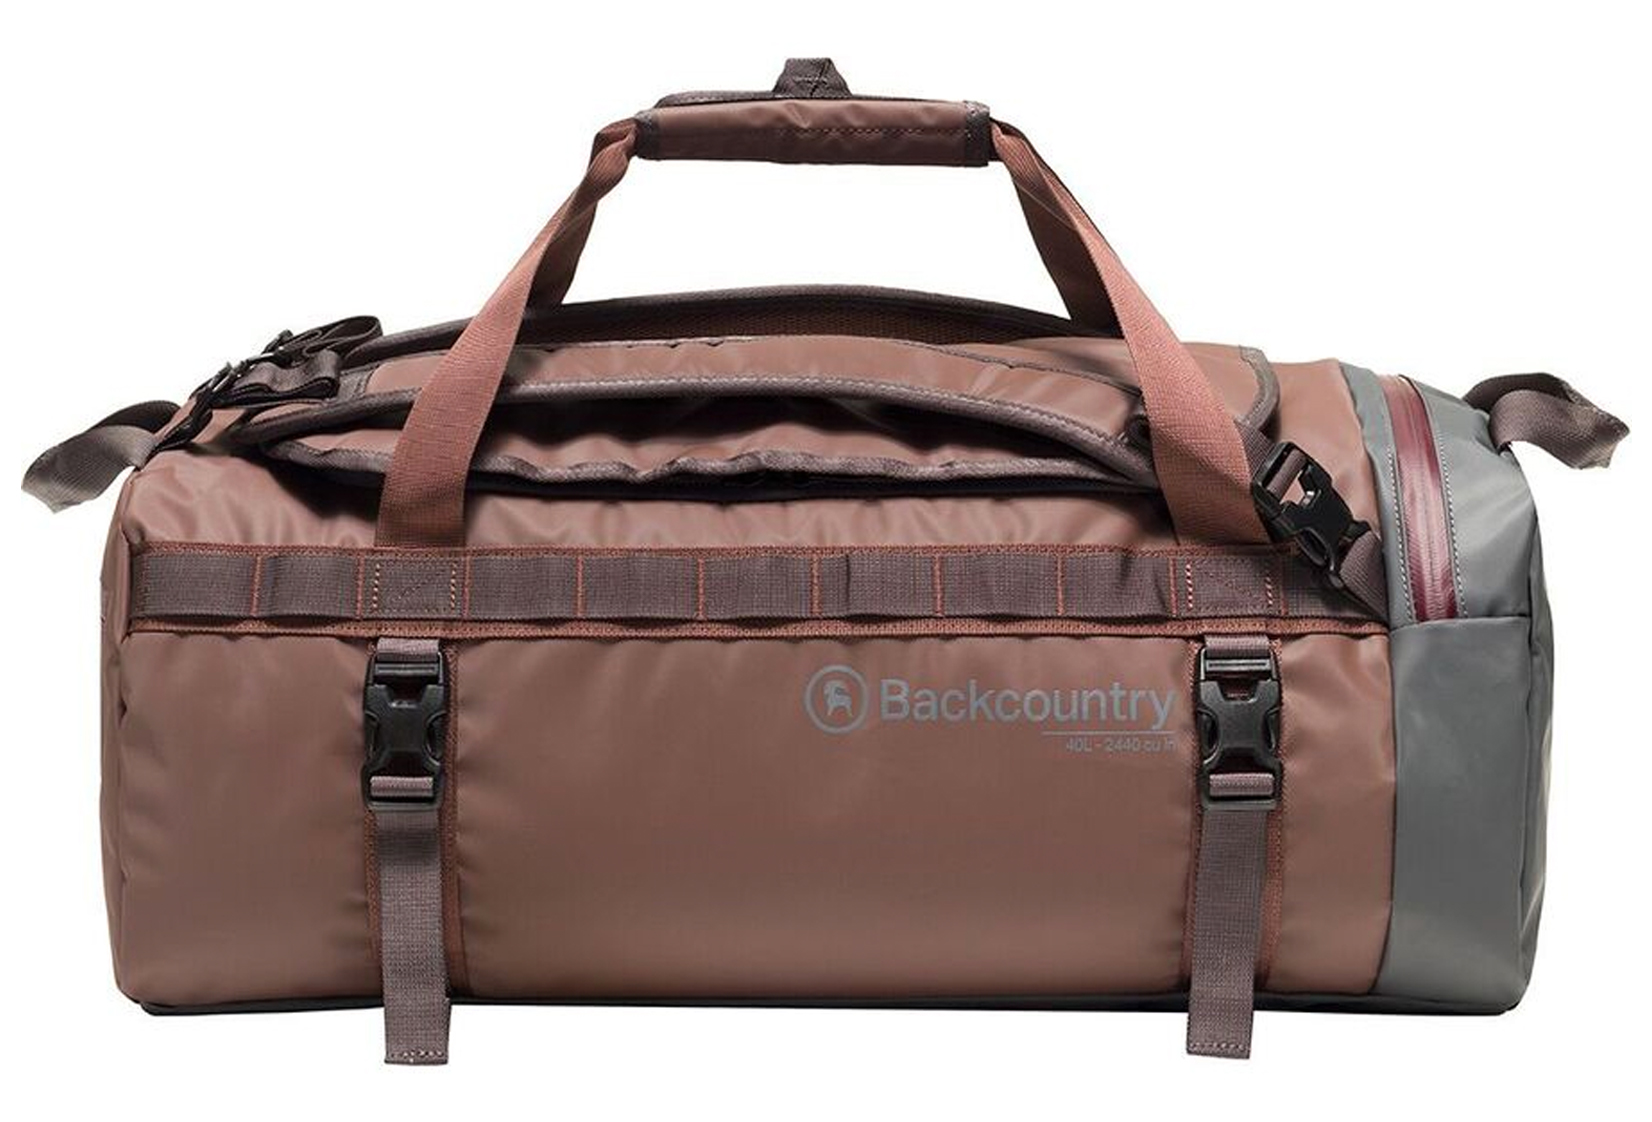 backcountry duffel